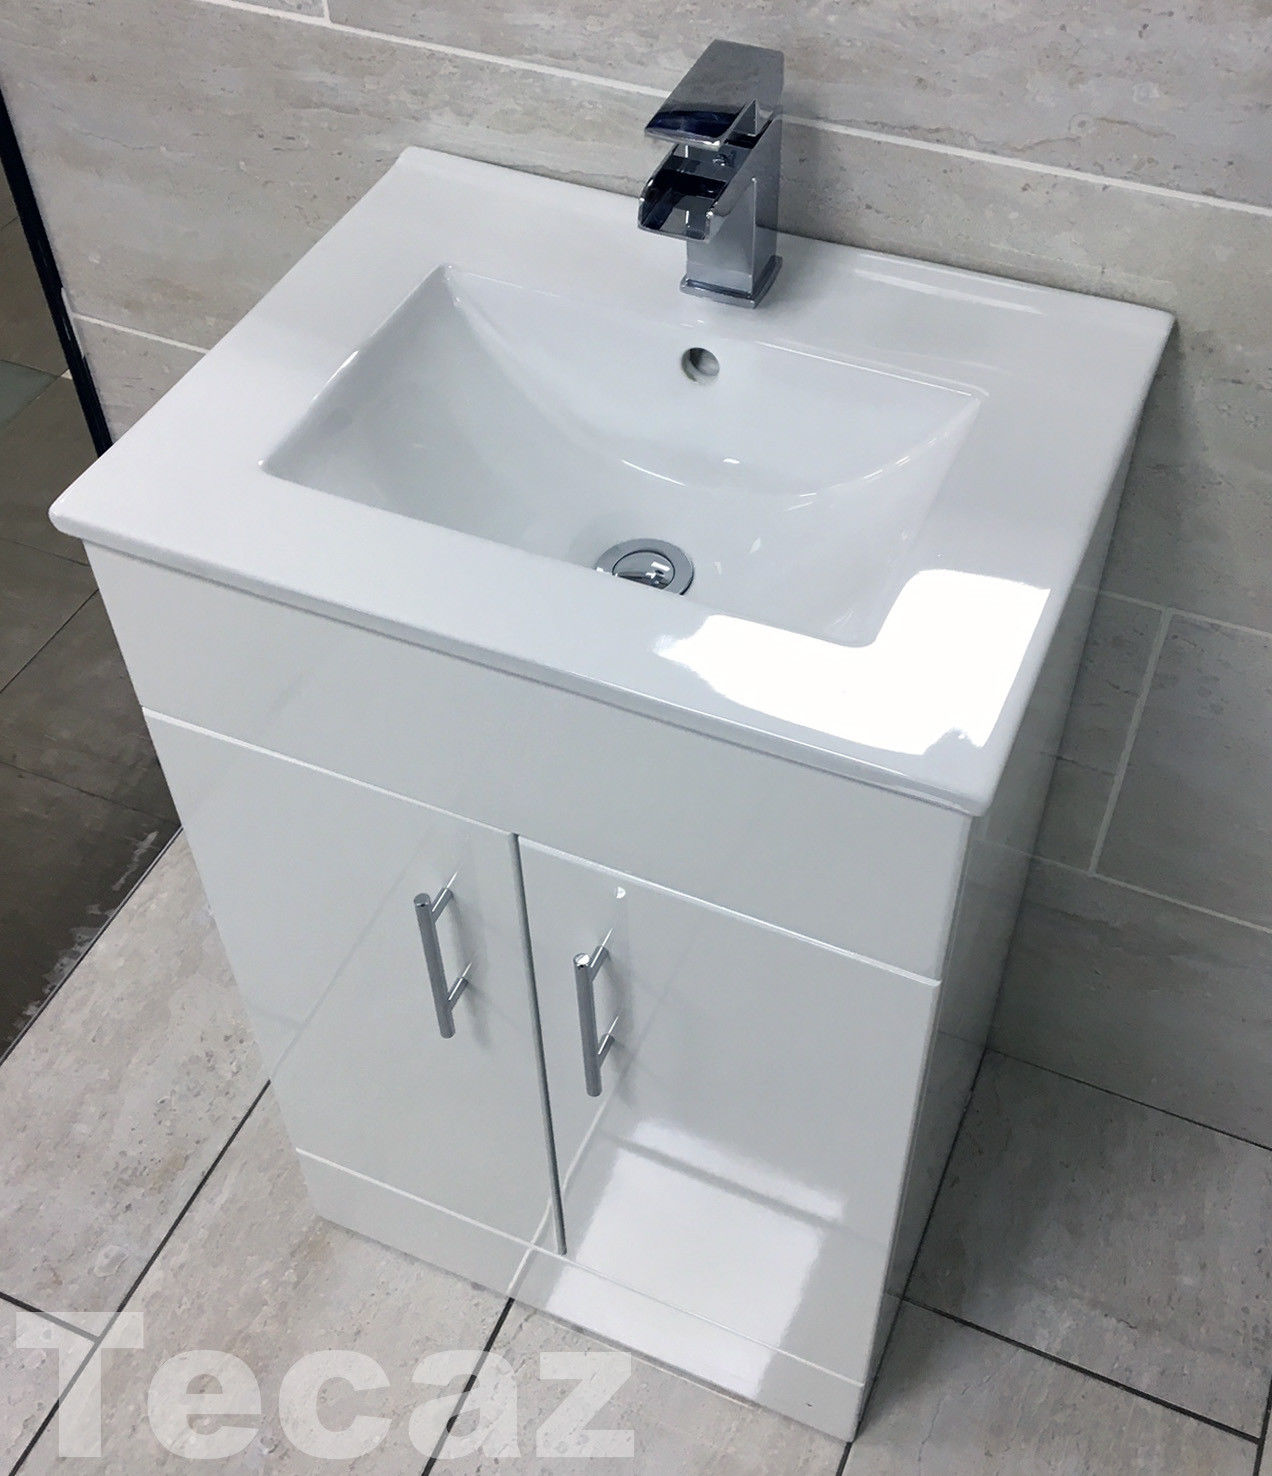 Merveilleux Nina 500mm Square Vanity Unit Basin Sink Square White Gloss Cloakroom  Ensuite